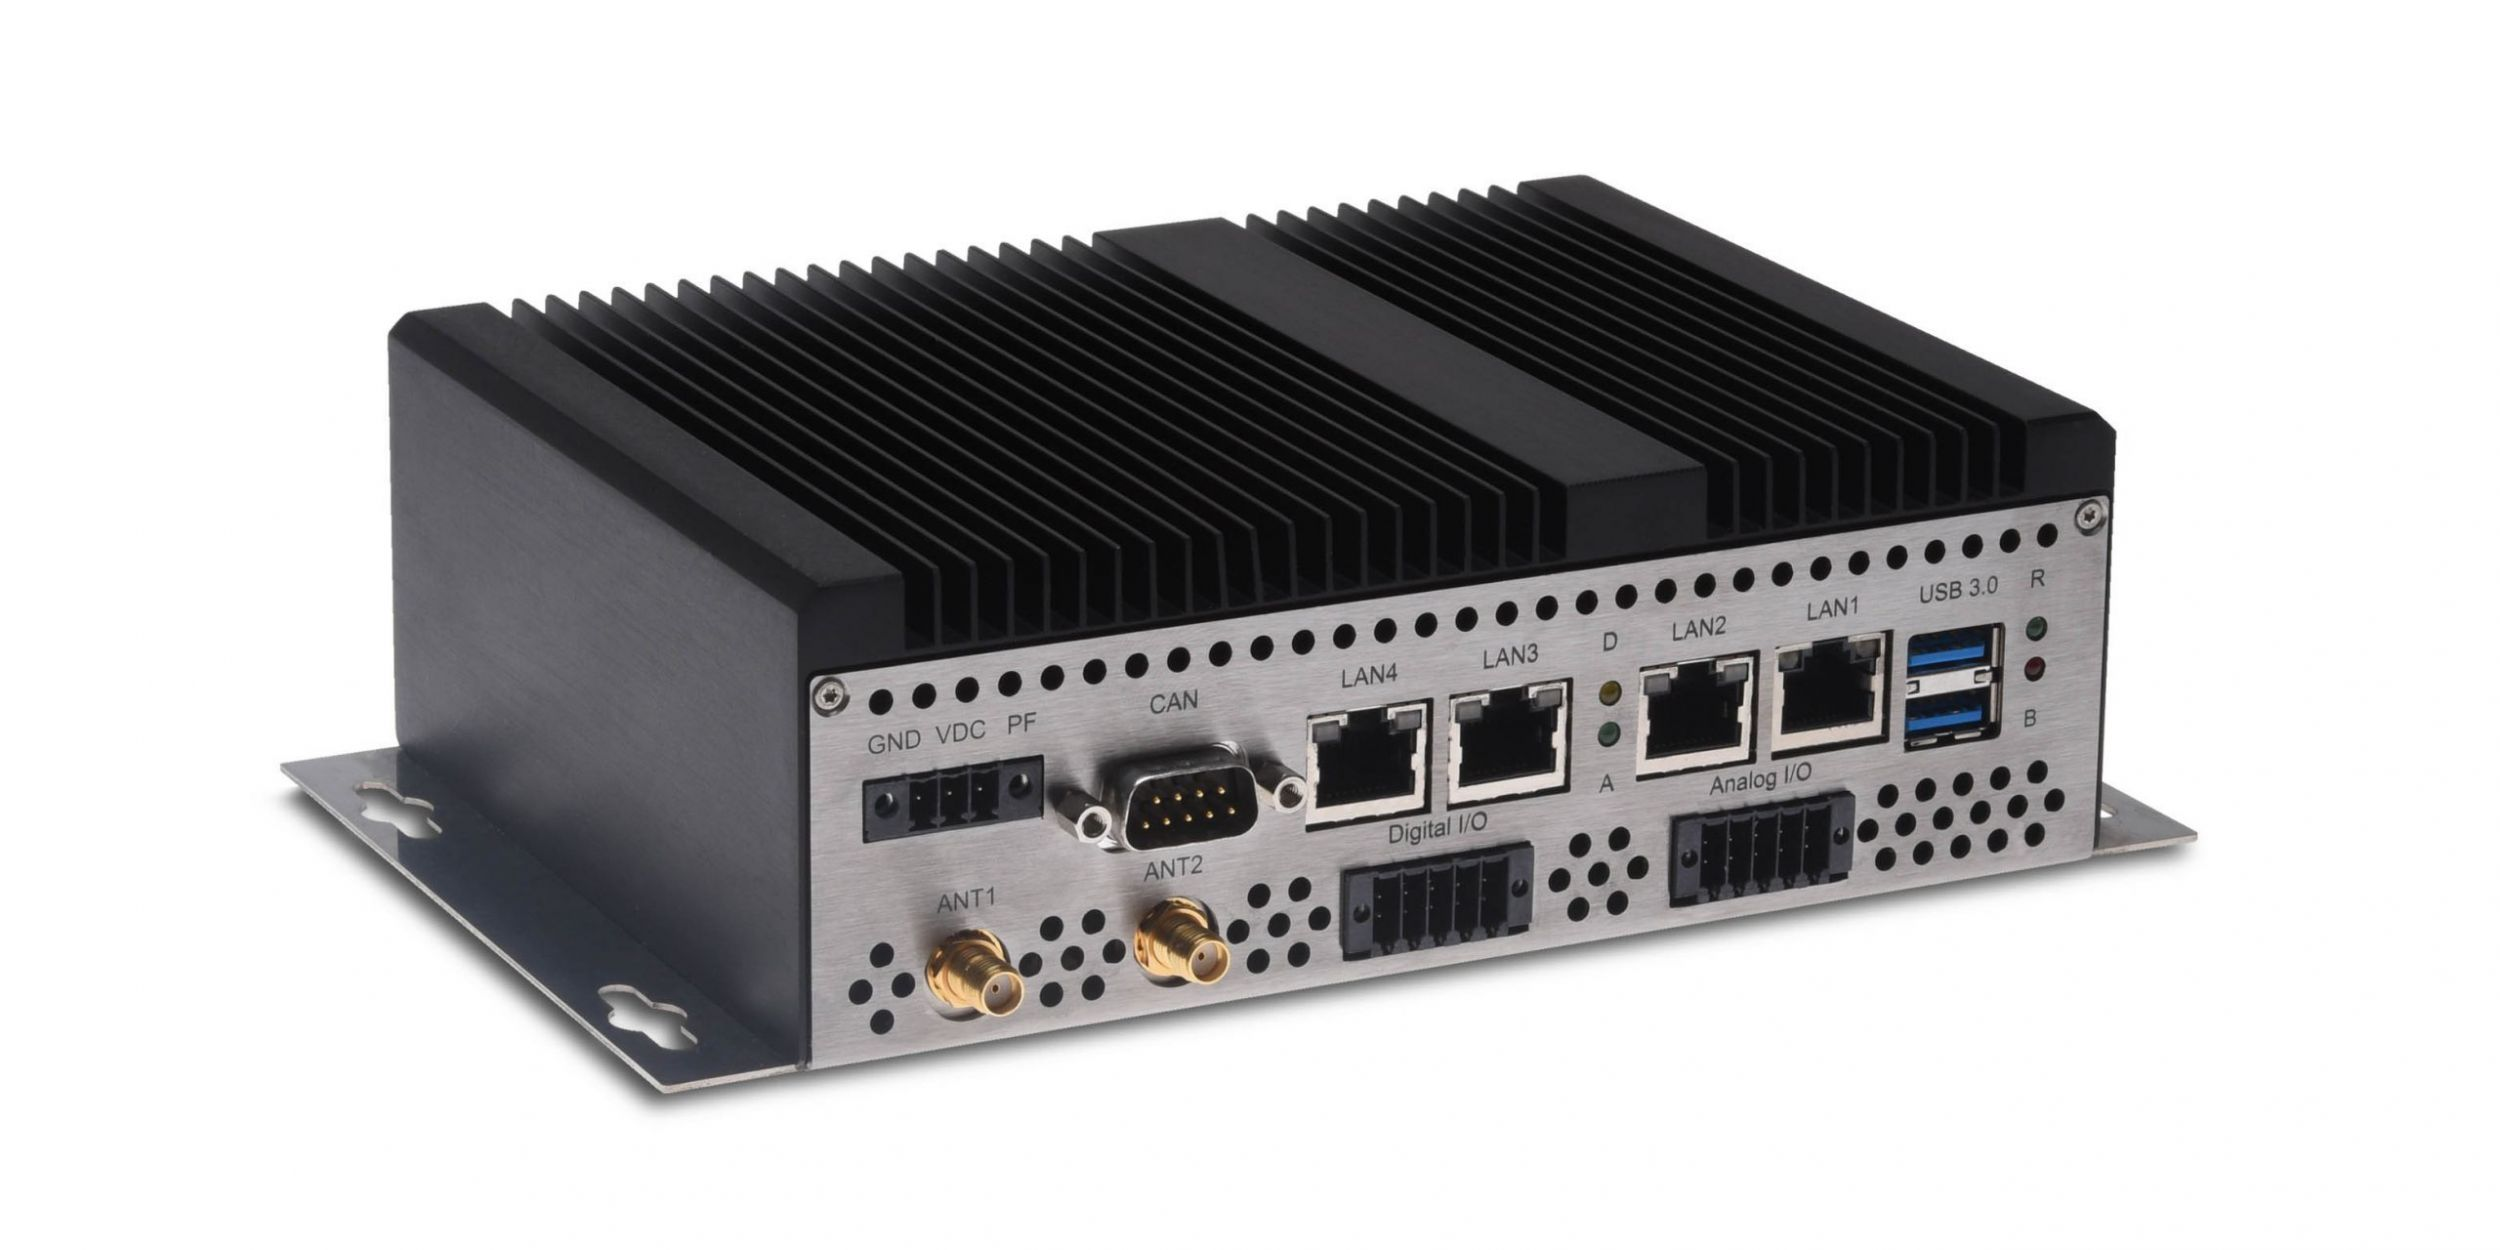 Box PC als CAN-Controller oder IoT-Gateway